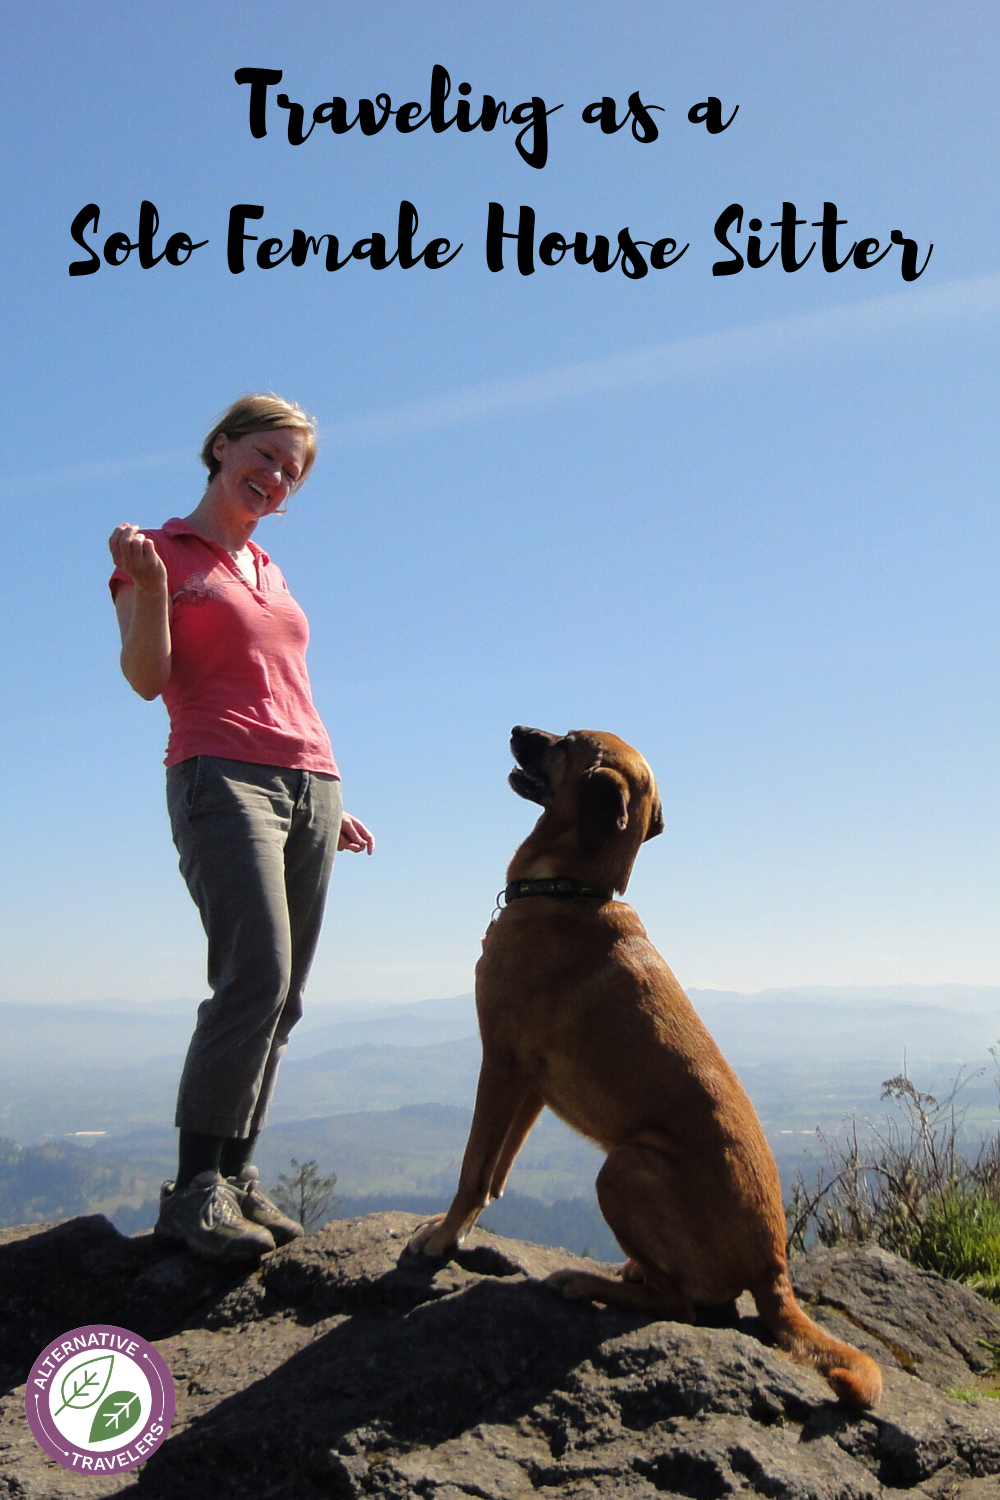 Want to start house sitting as a solo female traveler? Read Trish's inspiring story about how she sold her house in Oregon and started house sitting to travel the world. She covers fears of traveling and house sitting alone, house sitting tips, solo female travel tips, and more! #solofemaletravel #housesitting